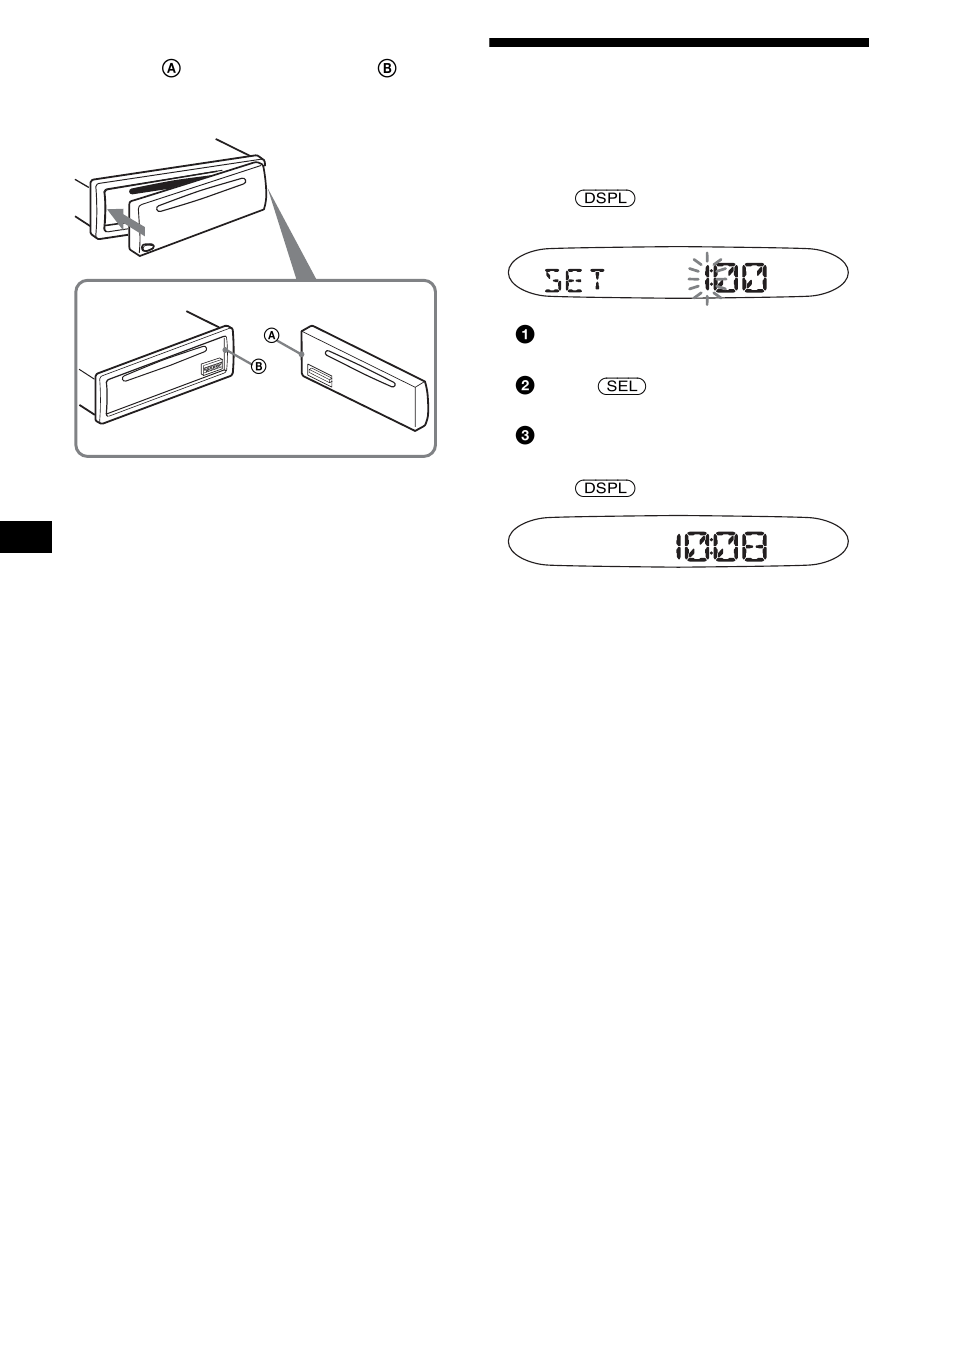 sony cdx sw200 wiring diagram 2007 ford fusion headlight setting the clock user manual page 8 40